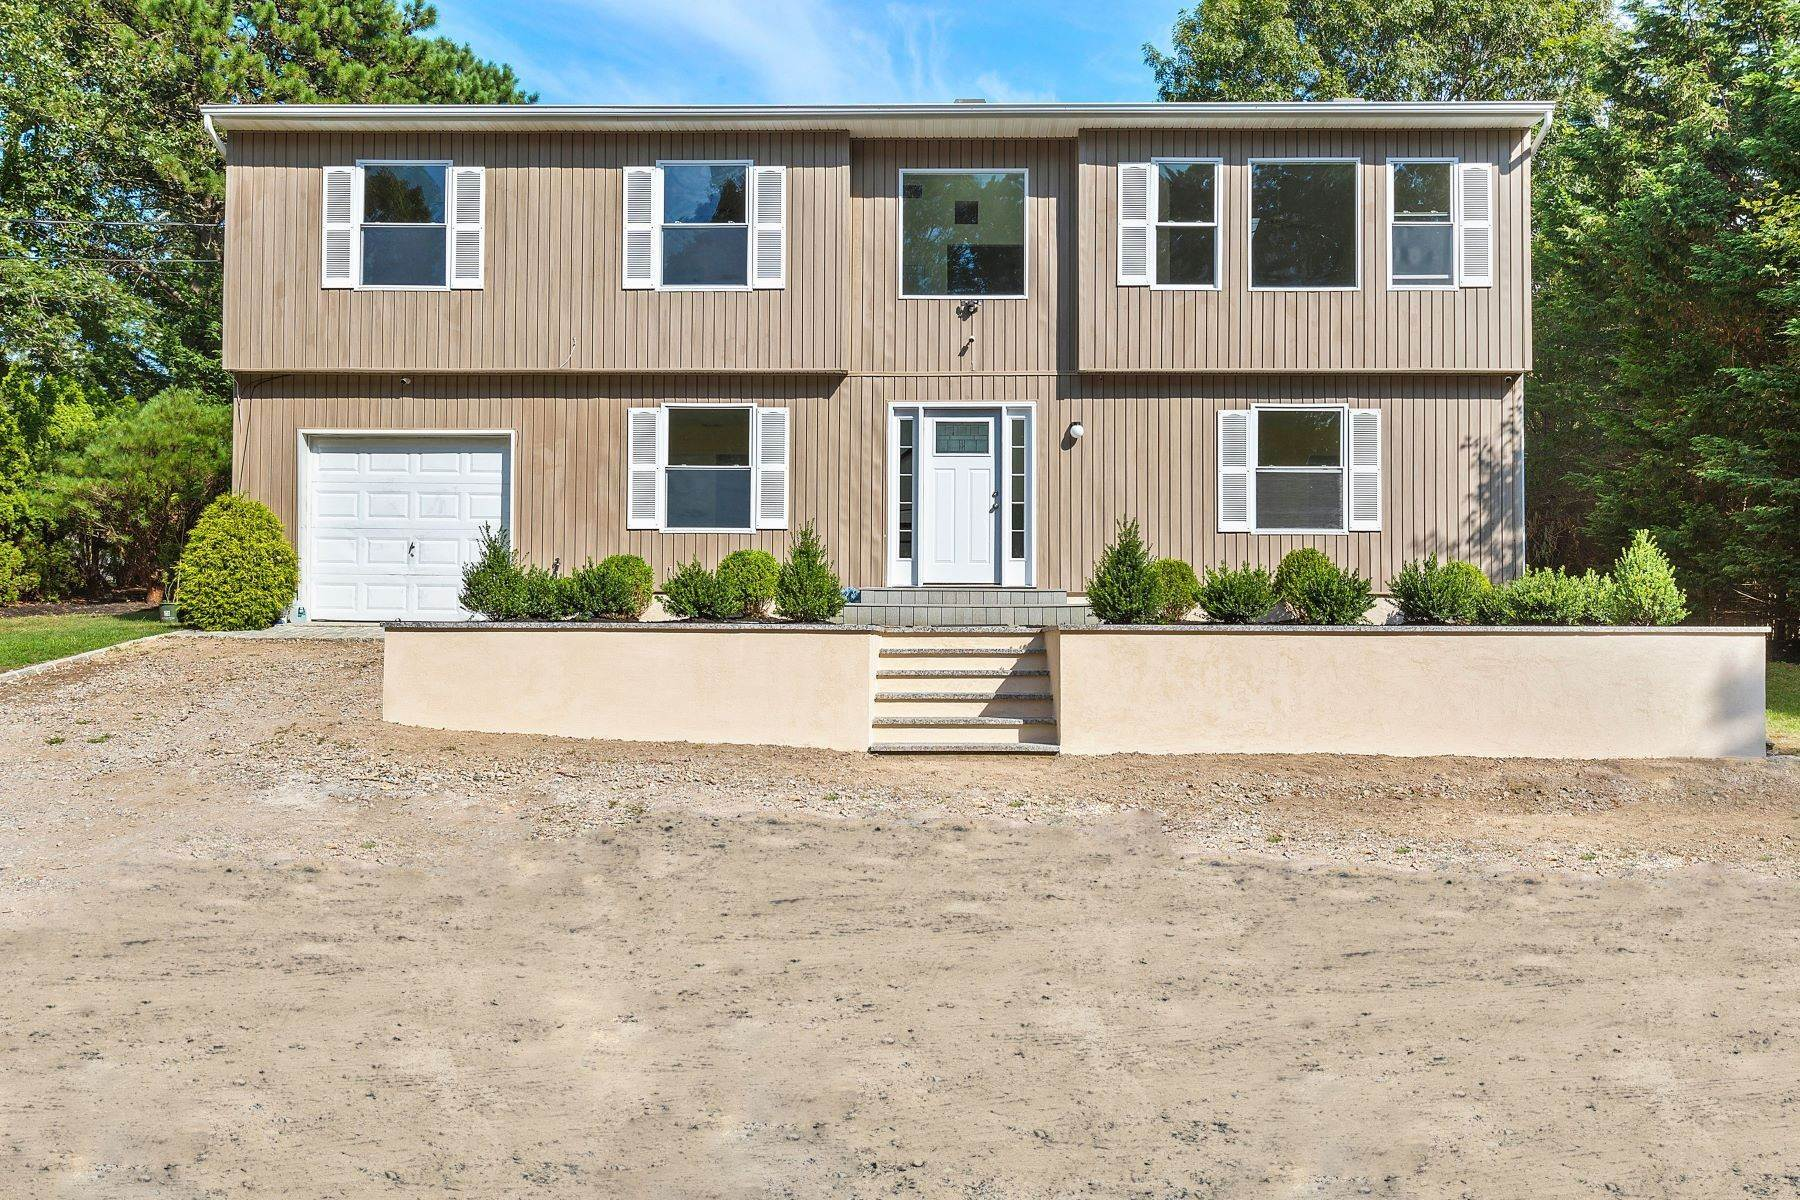 Multi-Family Homes for Active at 1850 County Road 39, Southampton, NY 11968 1850 County Road 39 Rd Southampton, New York 11968 United States